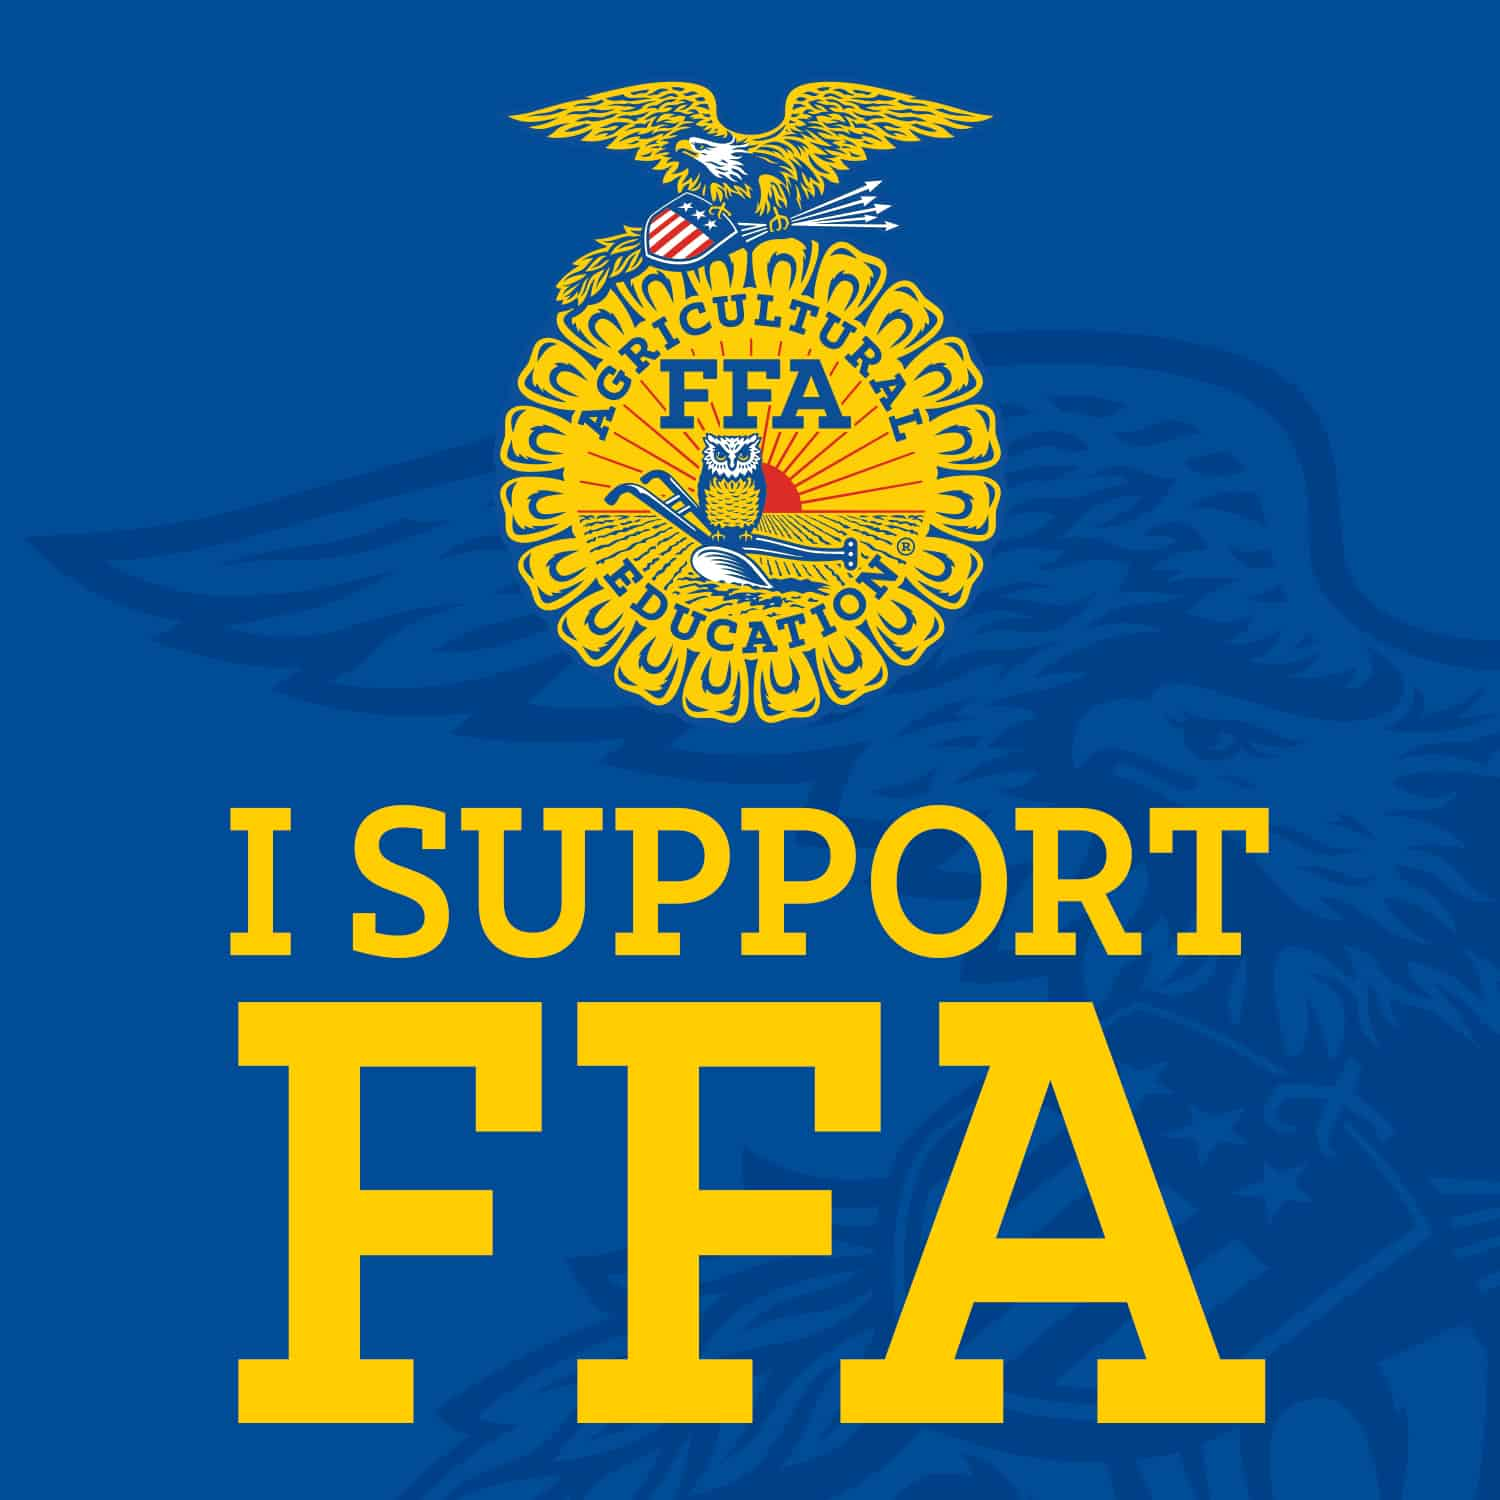 giveffaday_support_ffa_blue_1500x1500